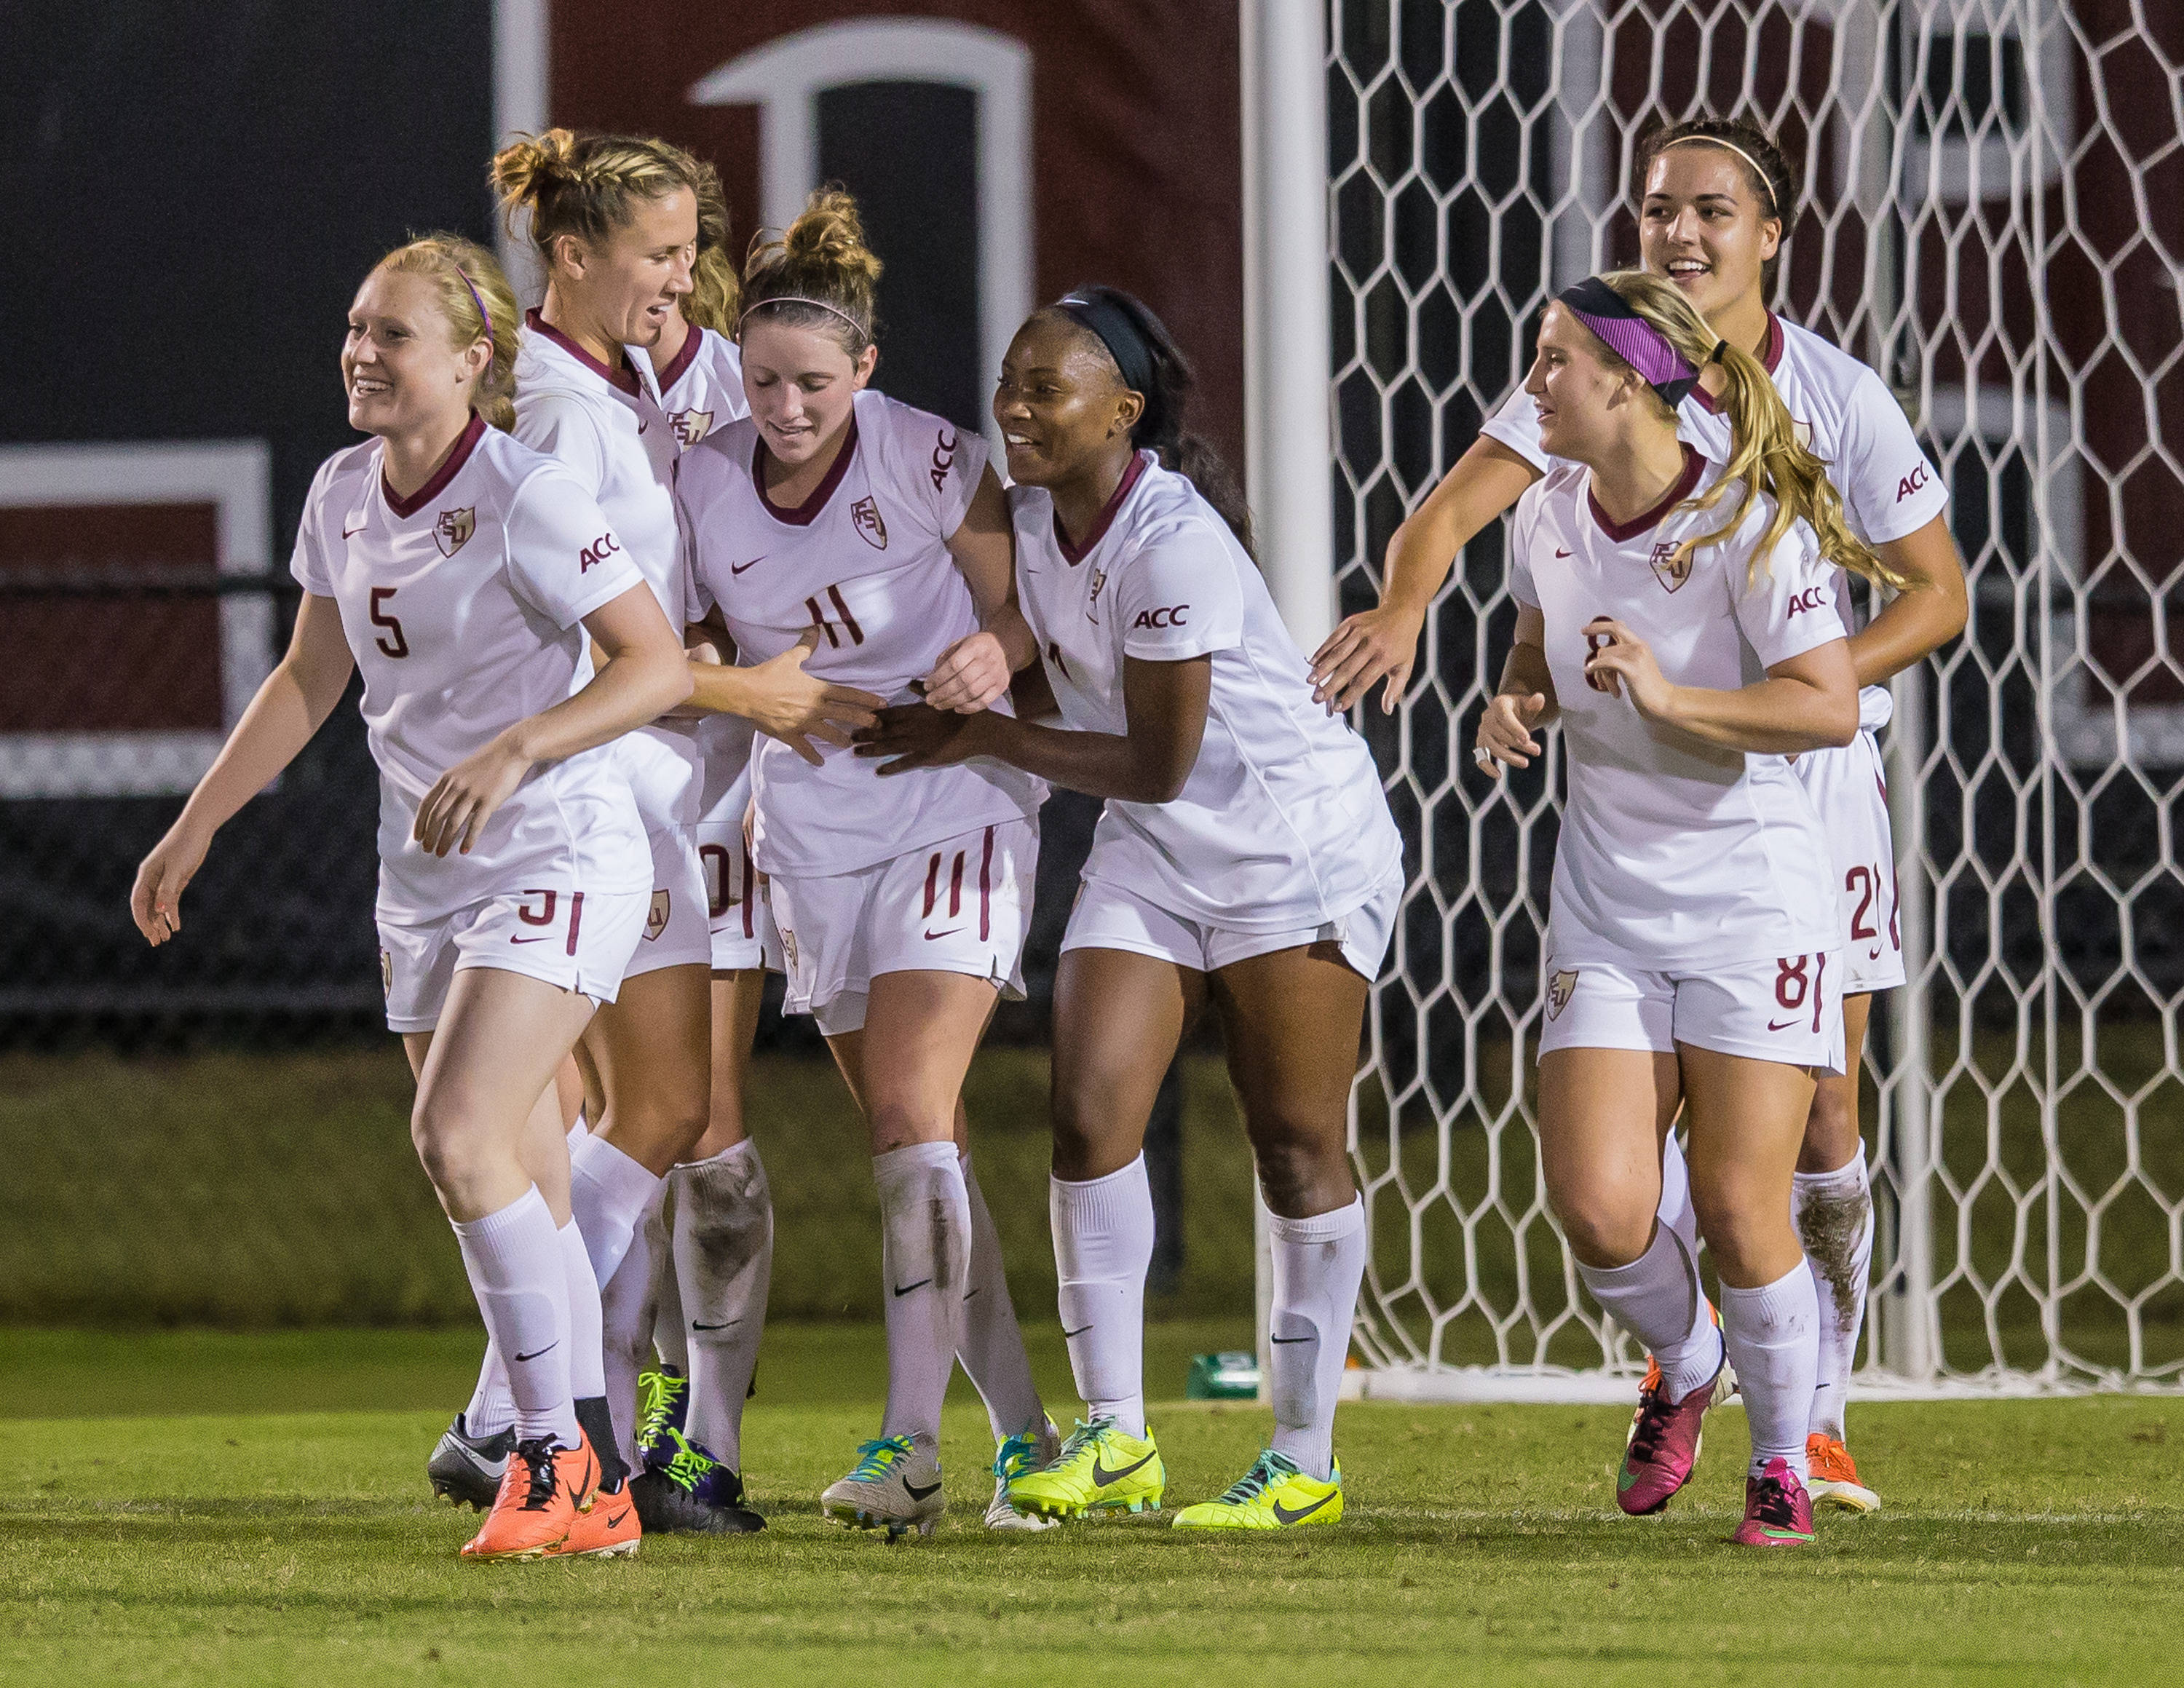 The Seminoles celebrate after scoring Thursday night.